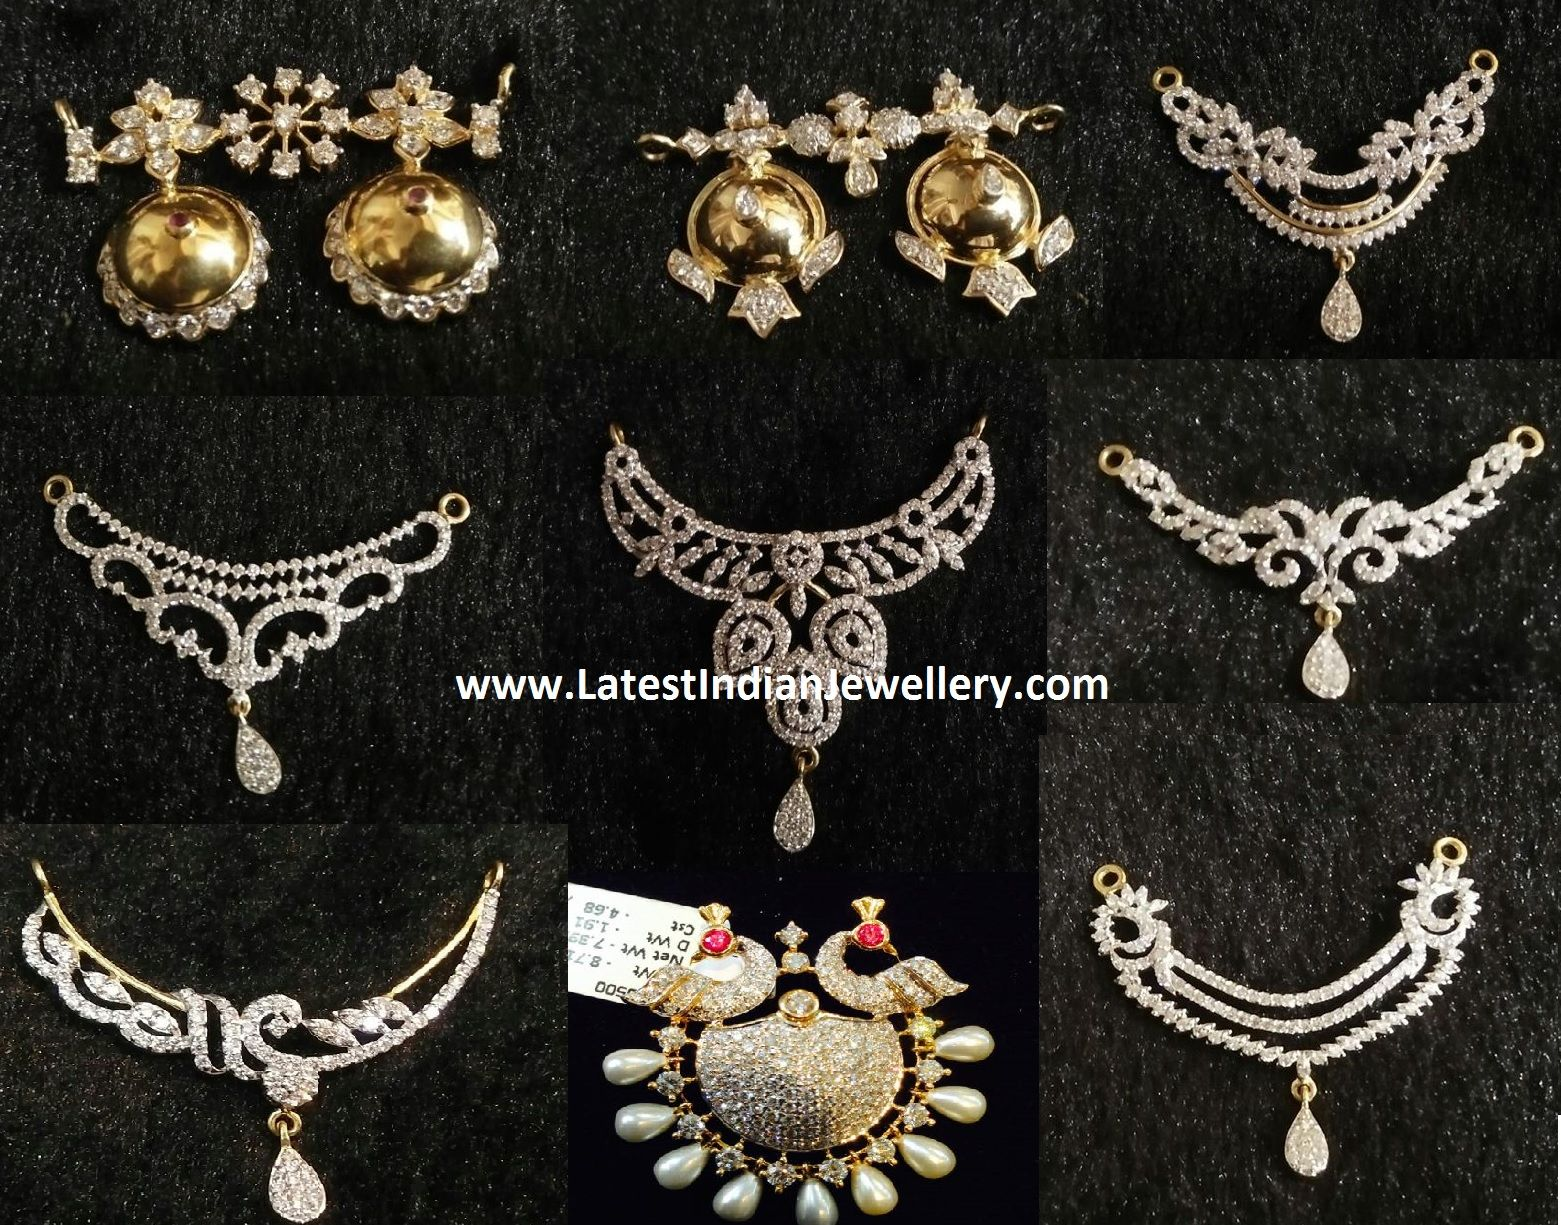 Diamond mangalsutra pendants collection nallapusalu pinterest